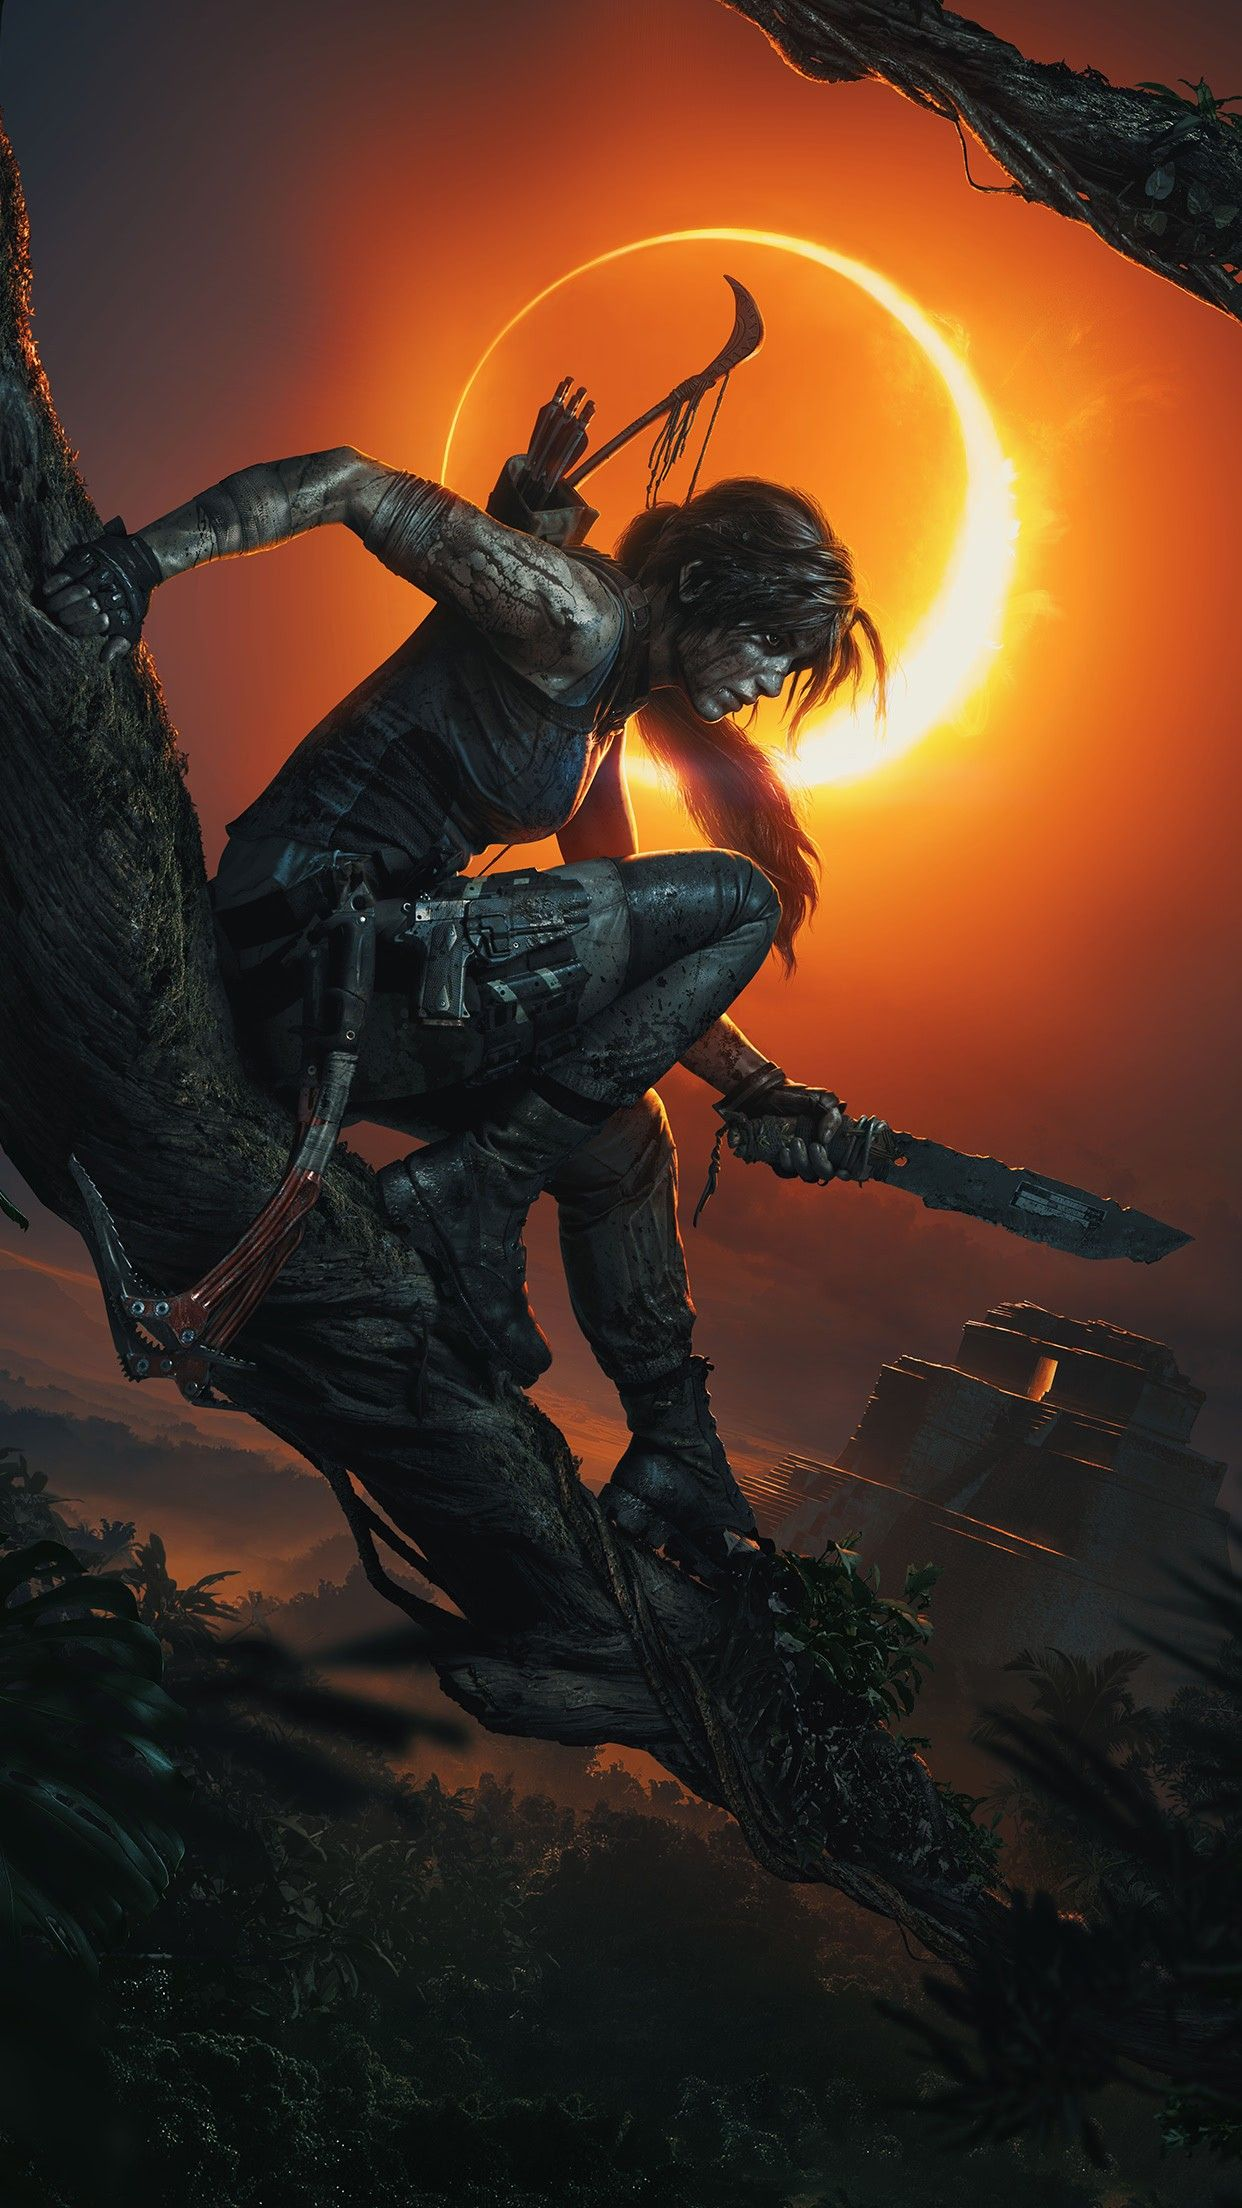 Shadow of the Tomb Raider phone wallpaper #3 | Lara croft ...